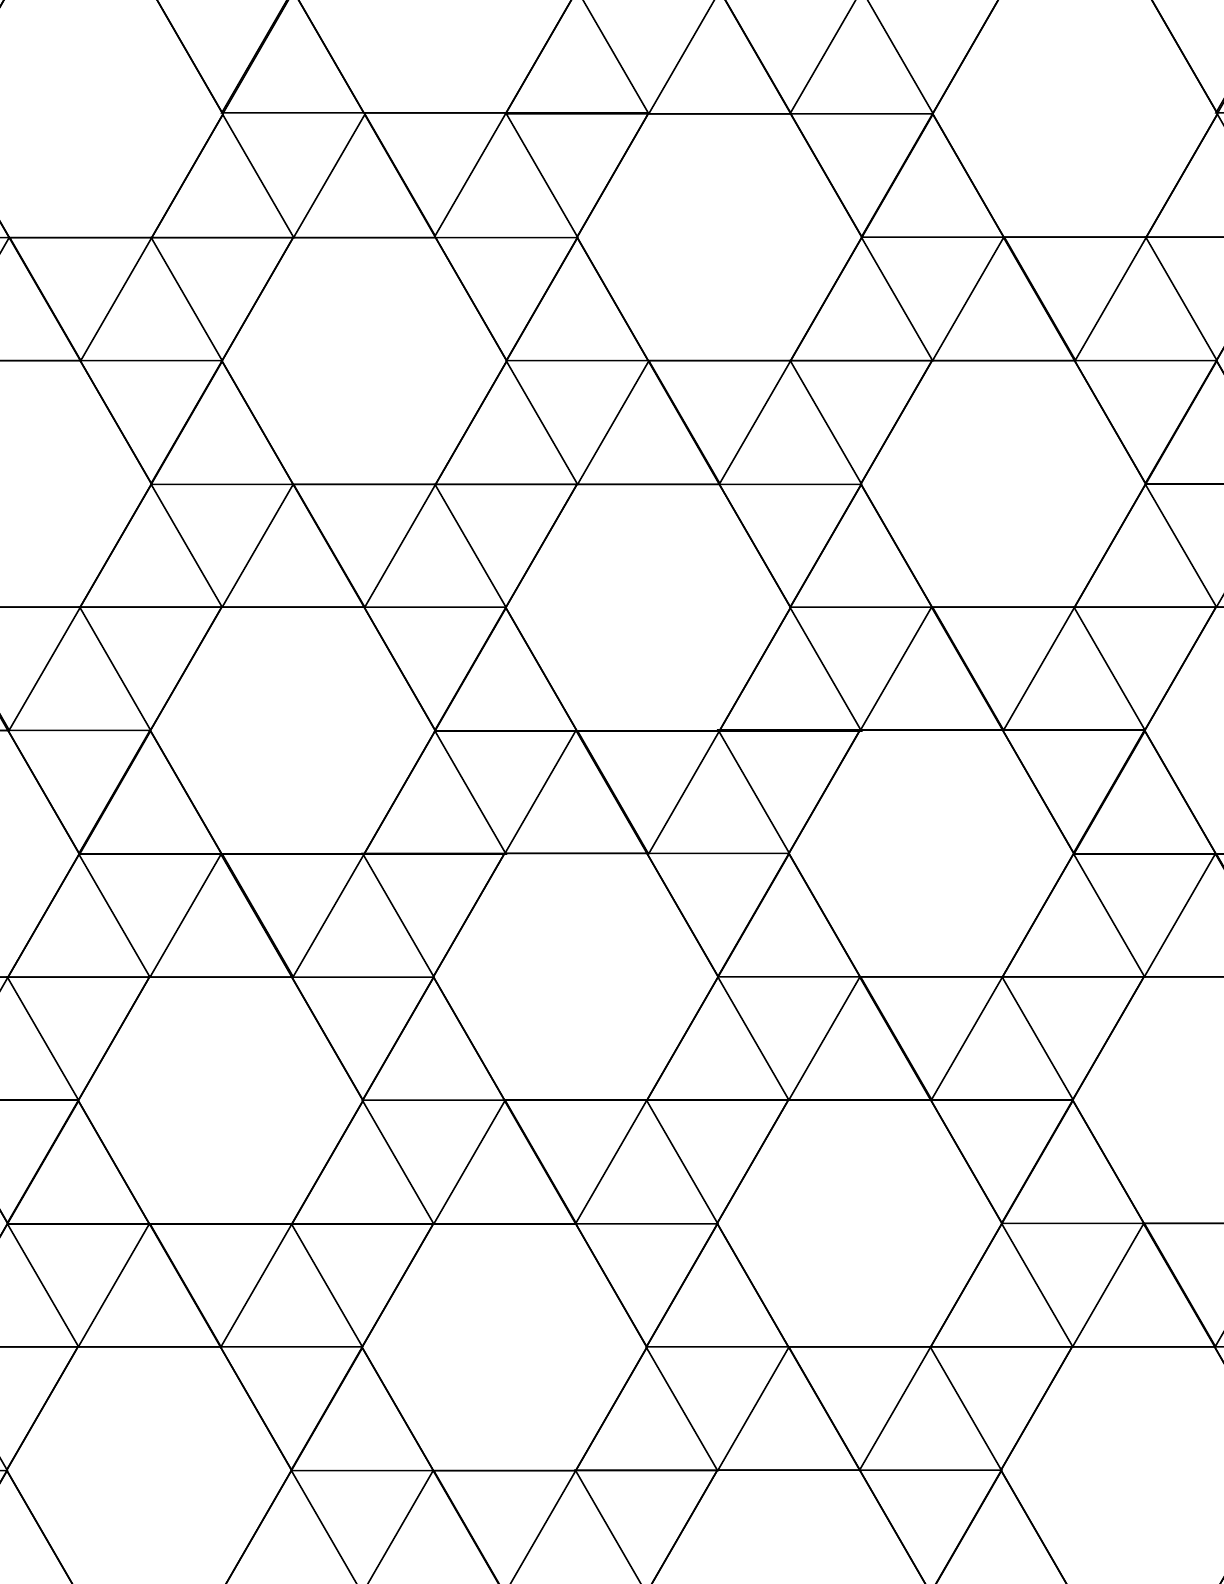 tessellation graph paper  3 3 3 3 6  free download